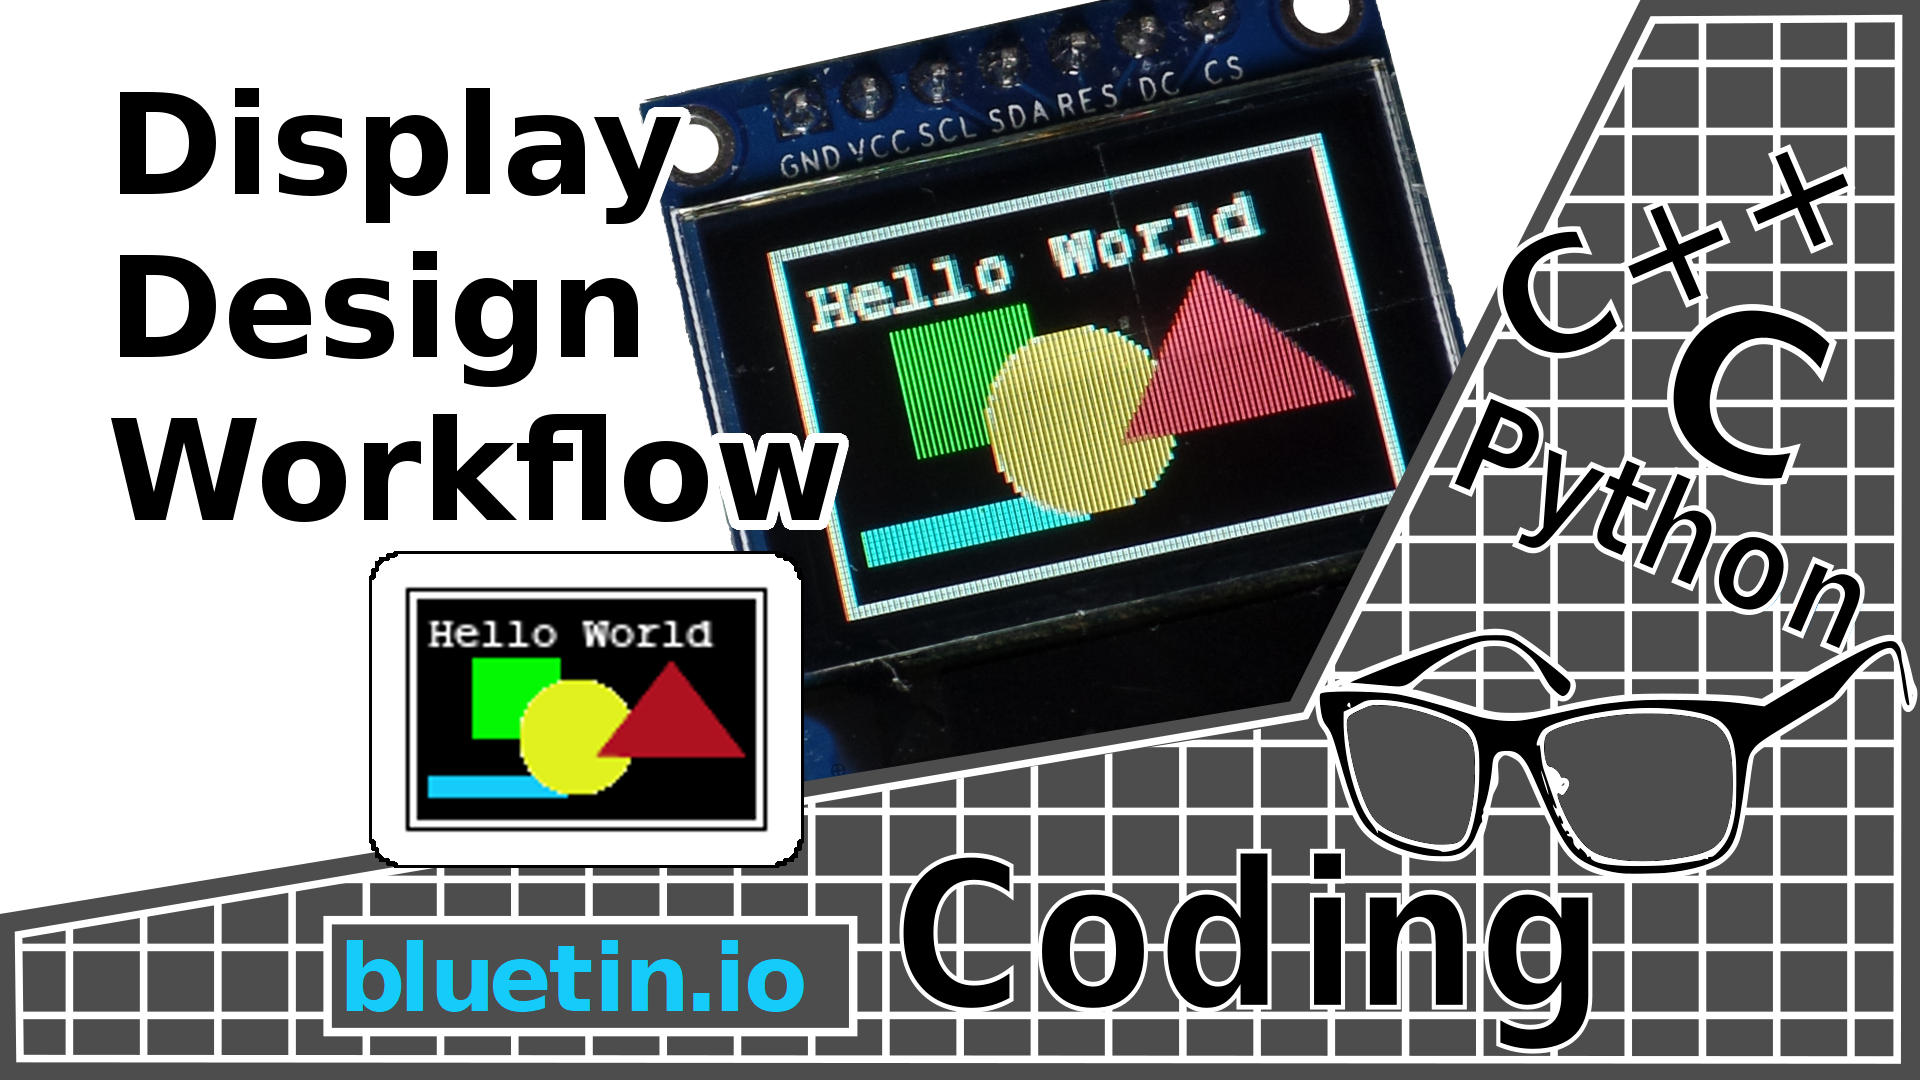 Create OLED or LCD Display Content with Pillow - Graphics